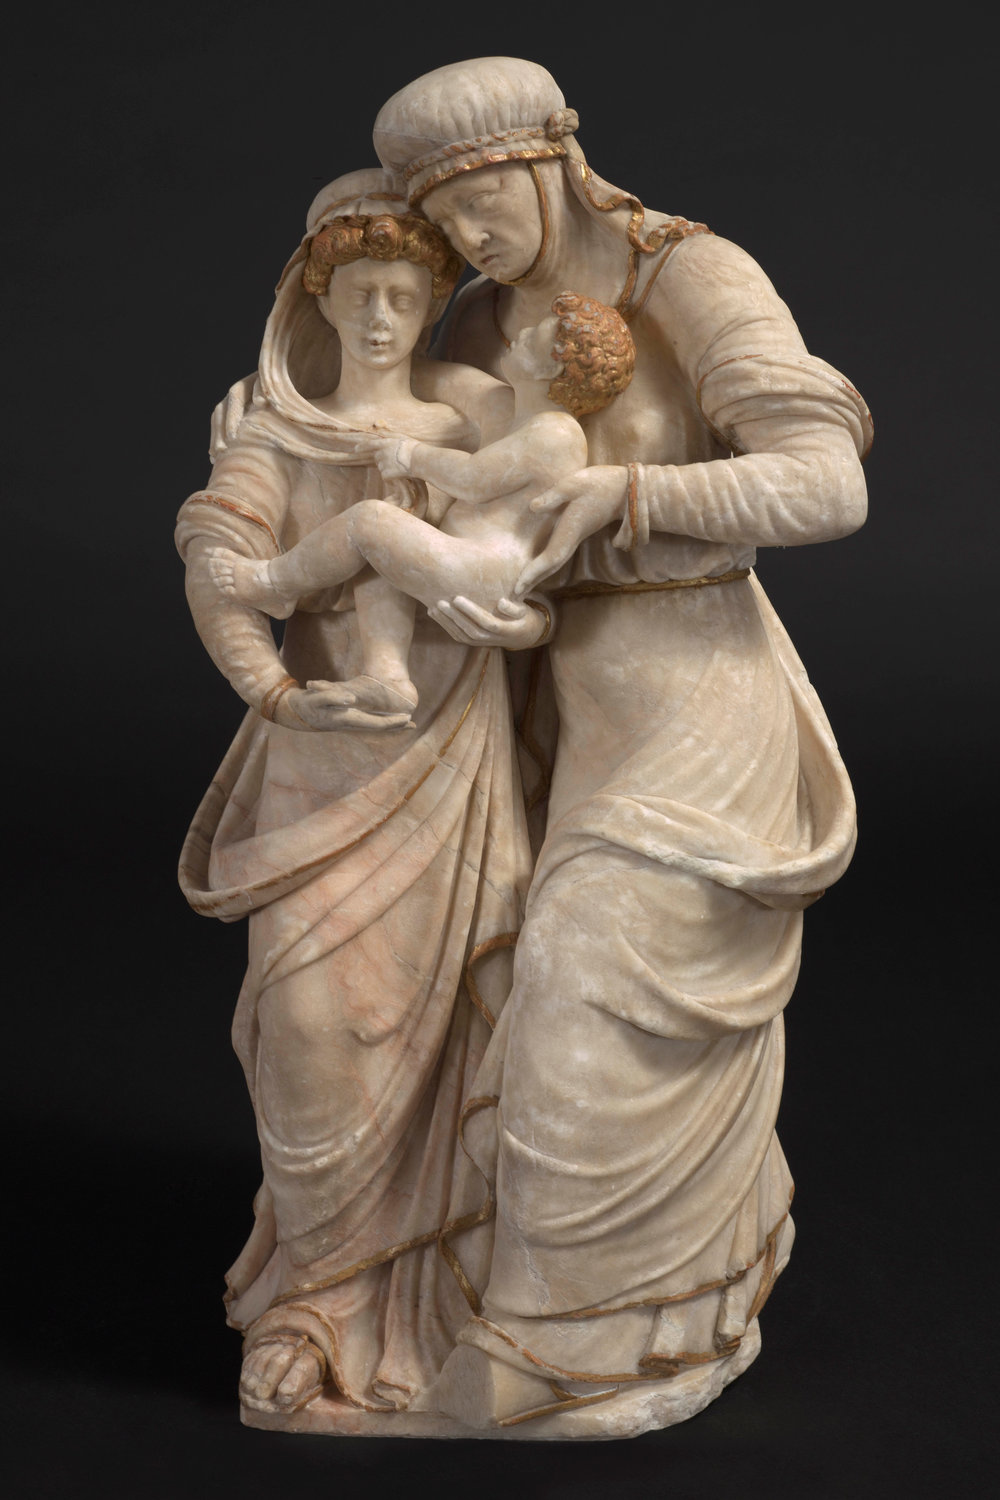 Virgin and Child with Saint Anne Workshop of Diego de Siloé (c. 1495 – 1563) and Felipe Vigarny (c. 1475 – 10 Nov 1542) Spain, Burgos c. 1520-25 Provenance: Private Collection, Spain 59 x 29 x 20 cm, alabaster with traces of gilding   (1153)